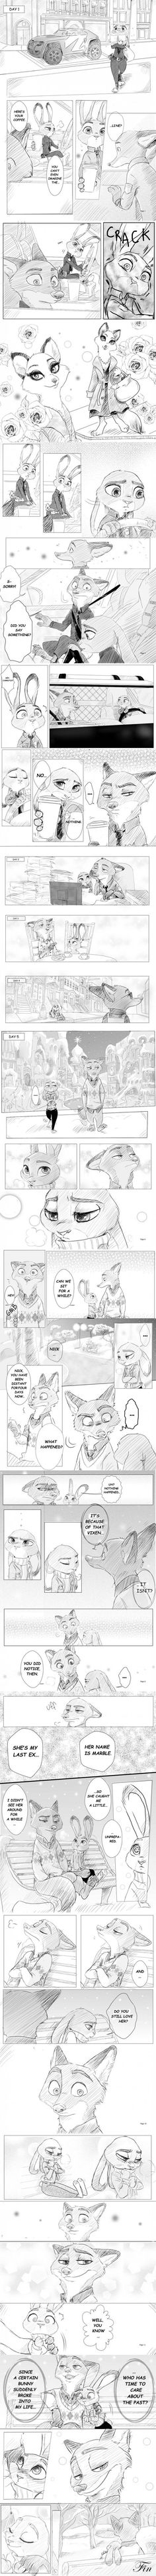 Newest Zootopia comic (by Rem289) <-- THIS WAS AMAZING: